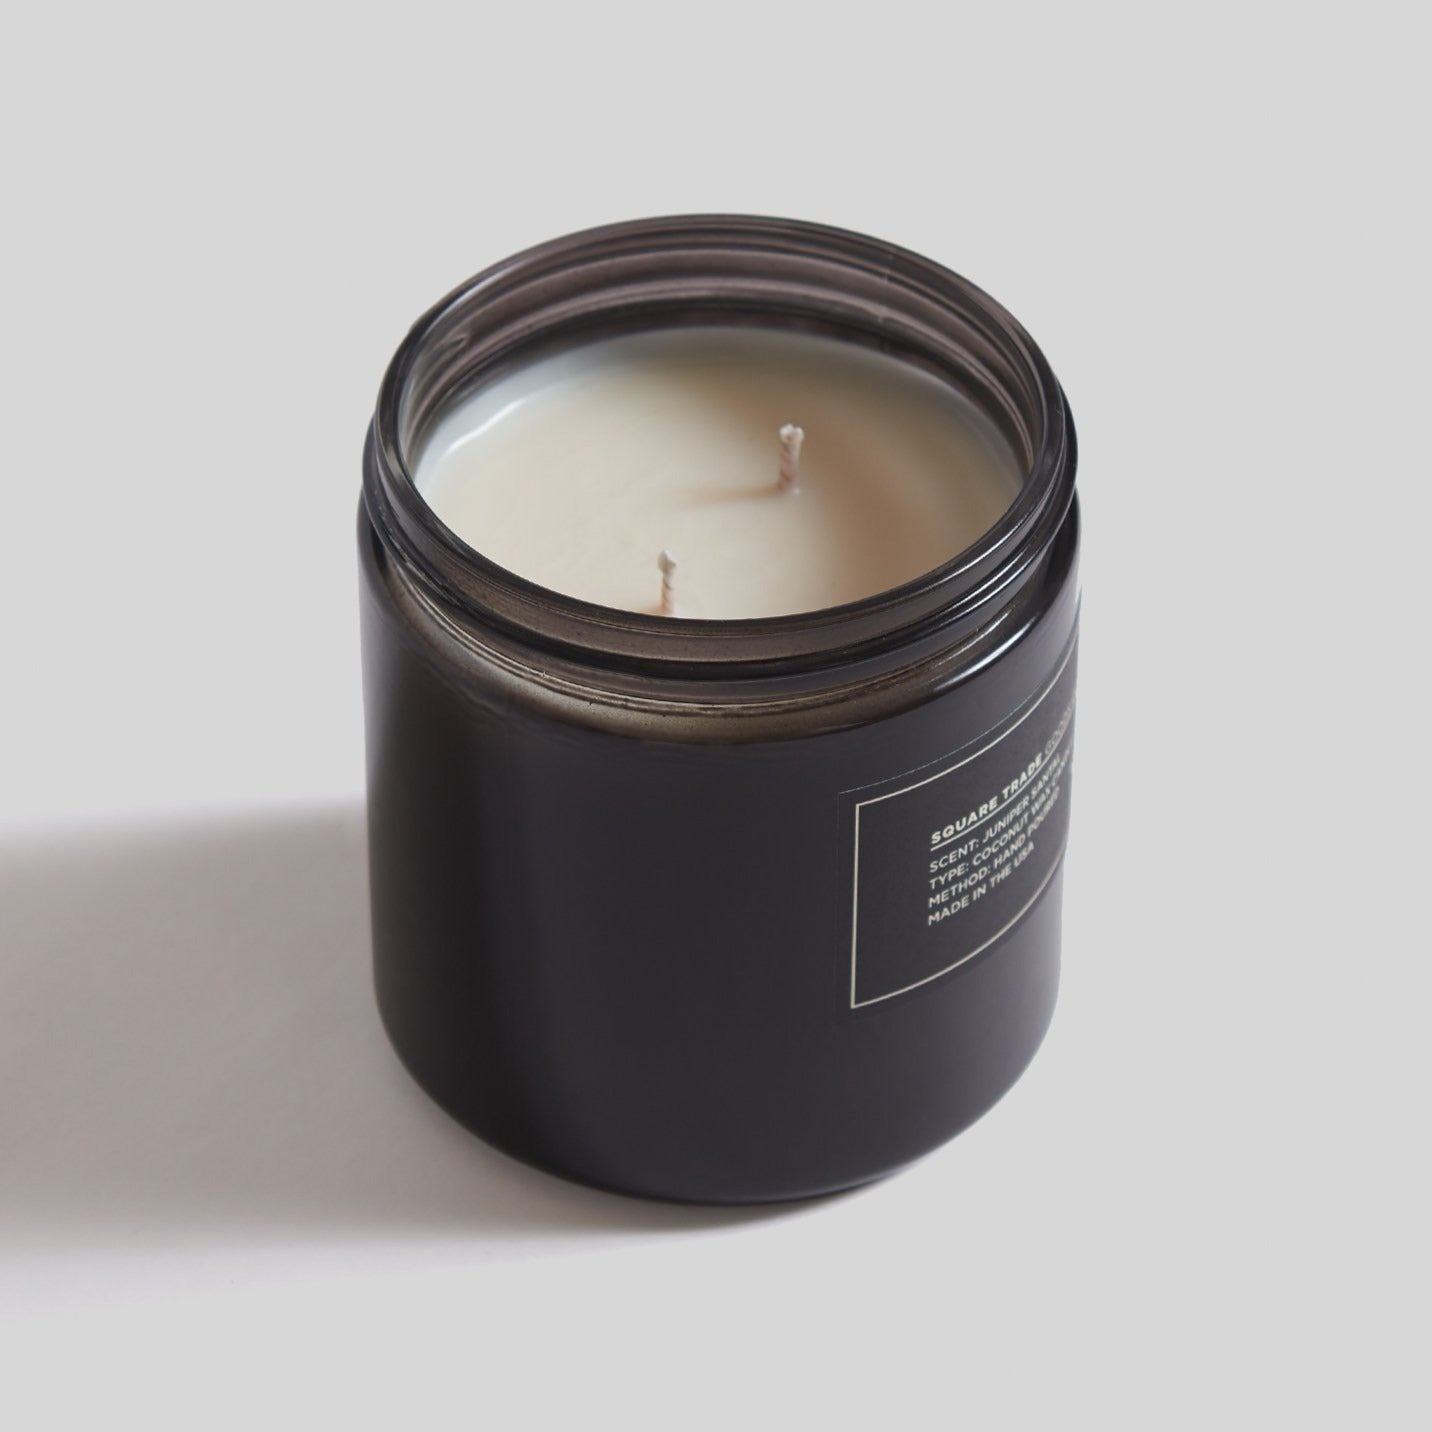 Square Trade Goods 16 oz Candle - Juniper Santal